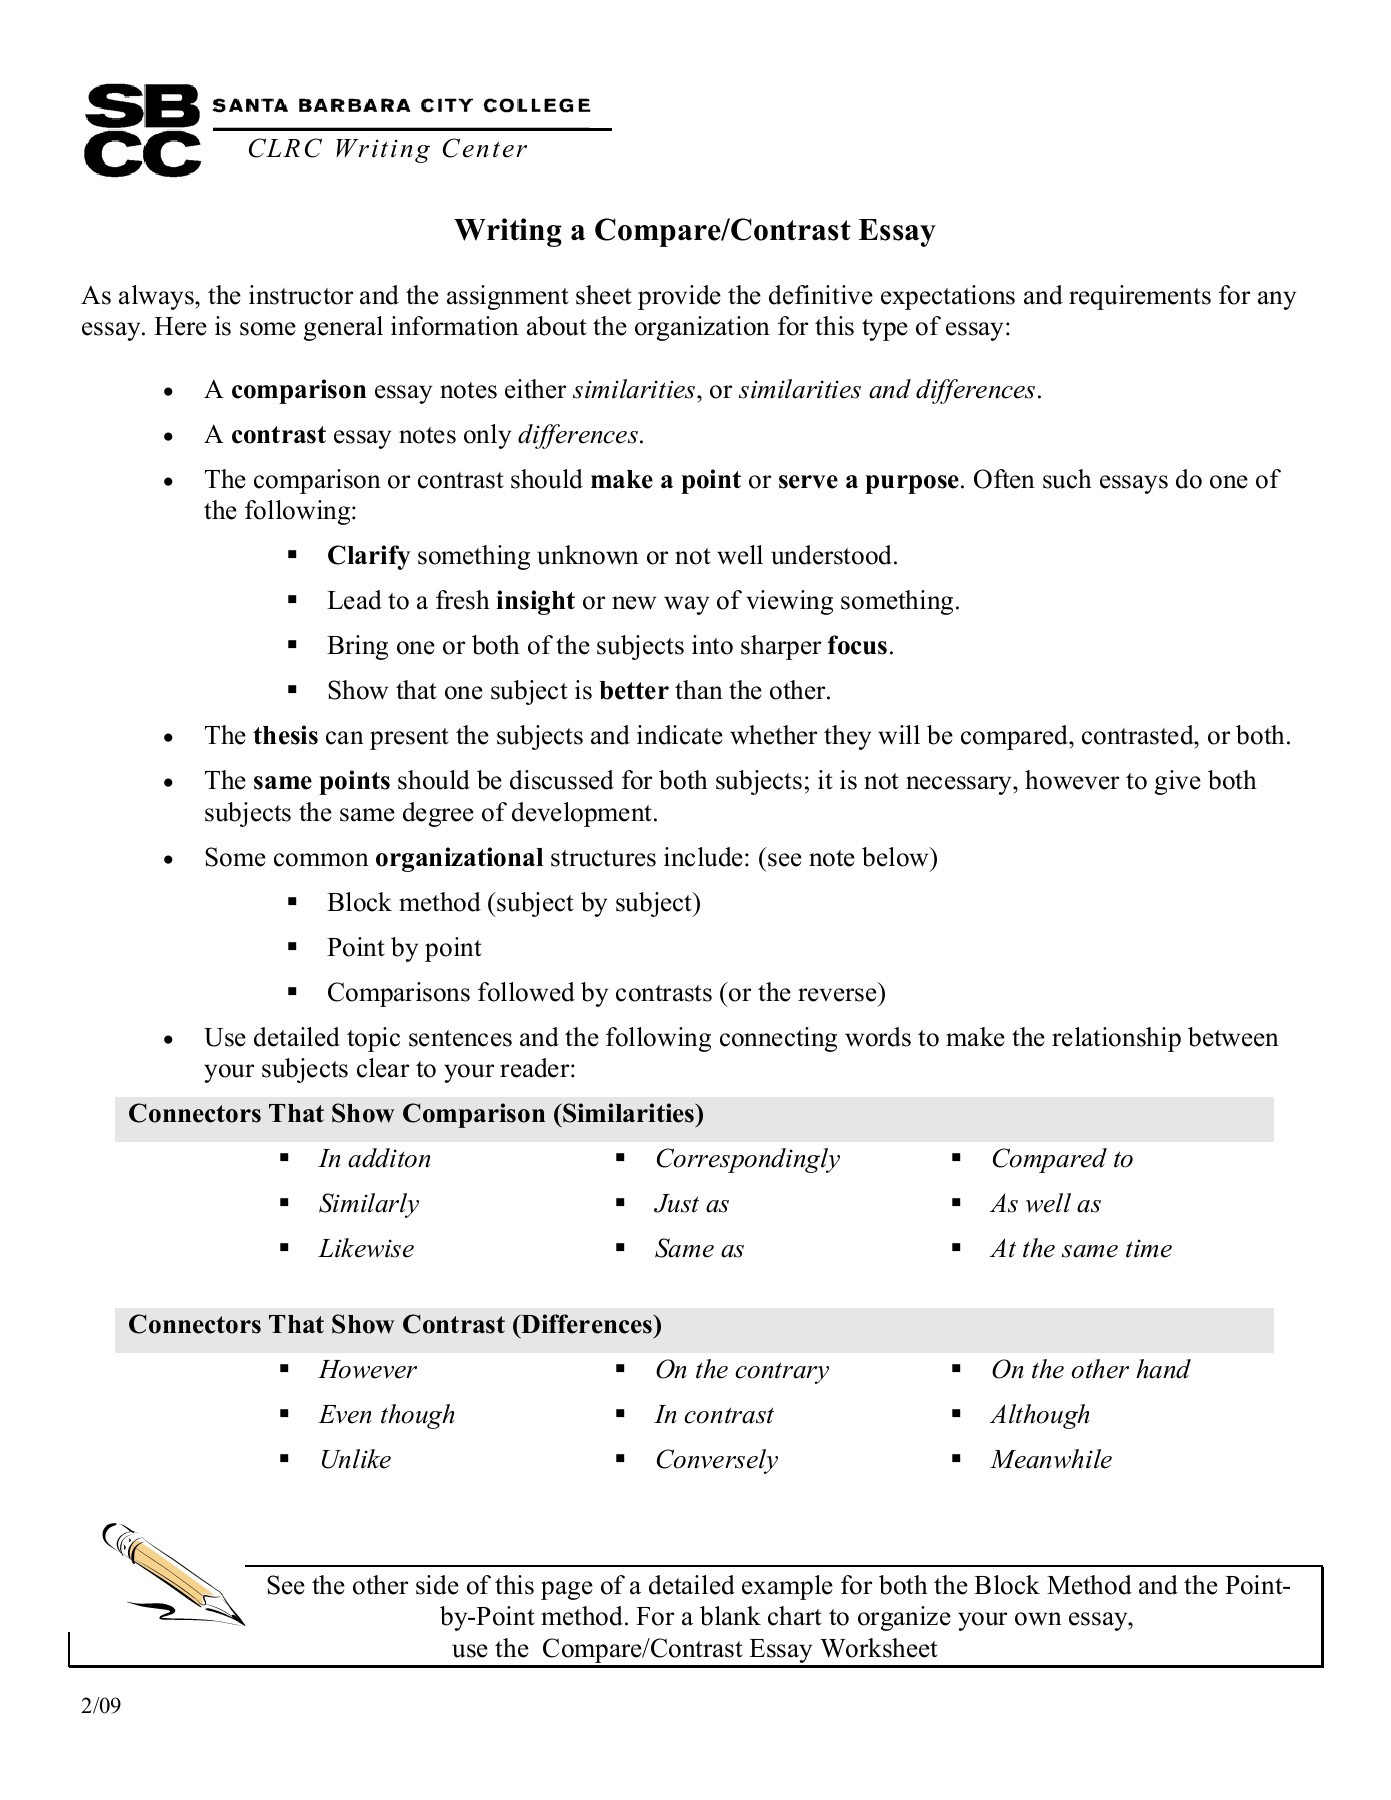 014 Compare Essay Beautiful Contrast Topics Ielts Examples College Middle School Full